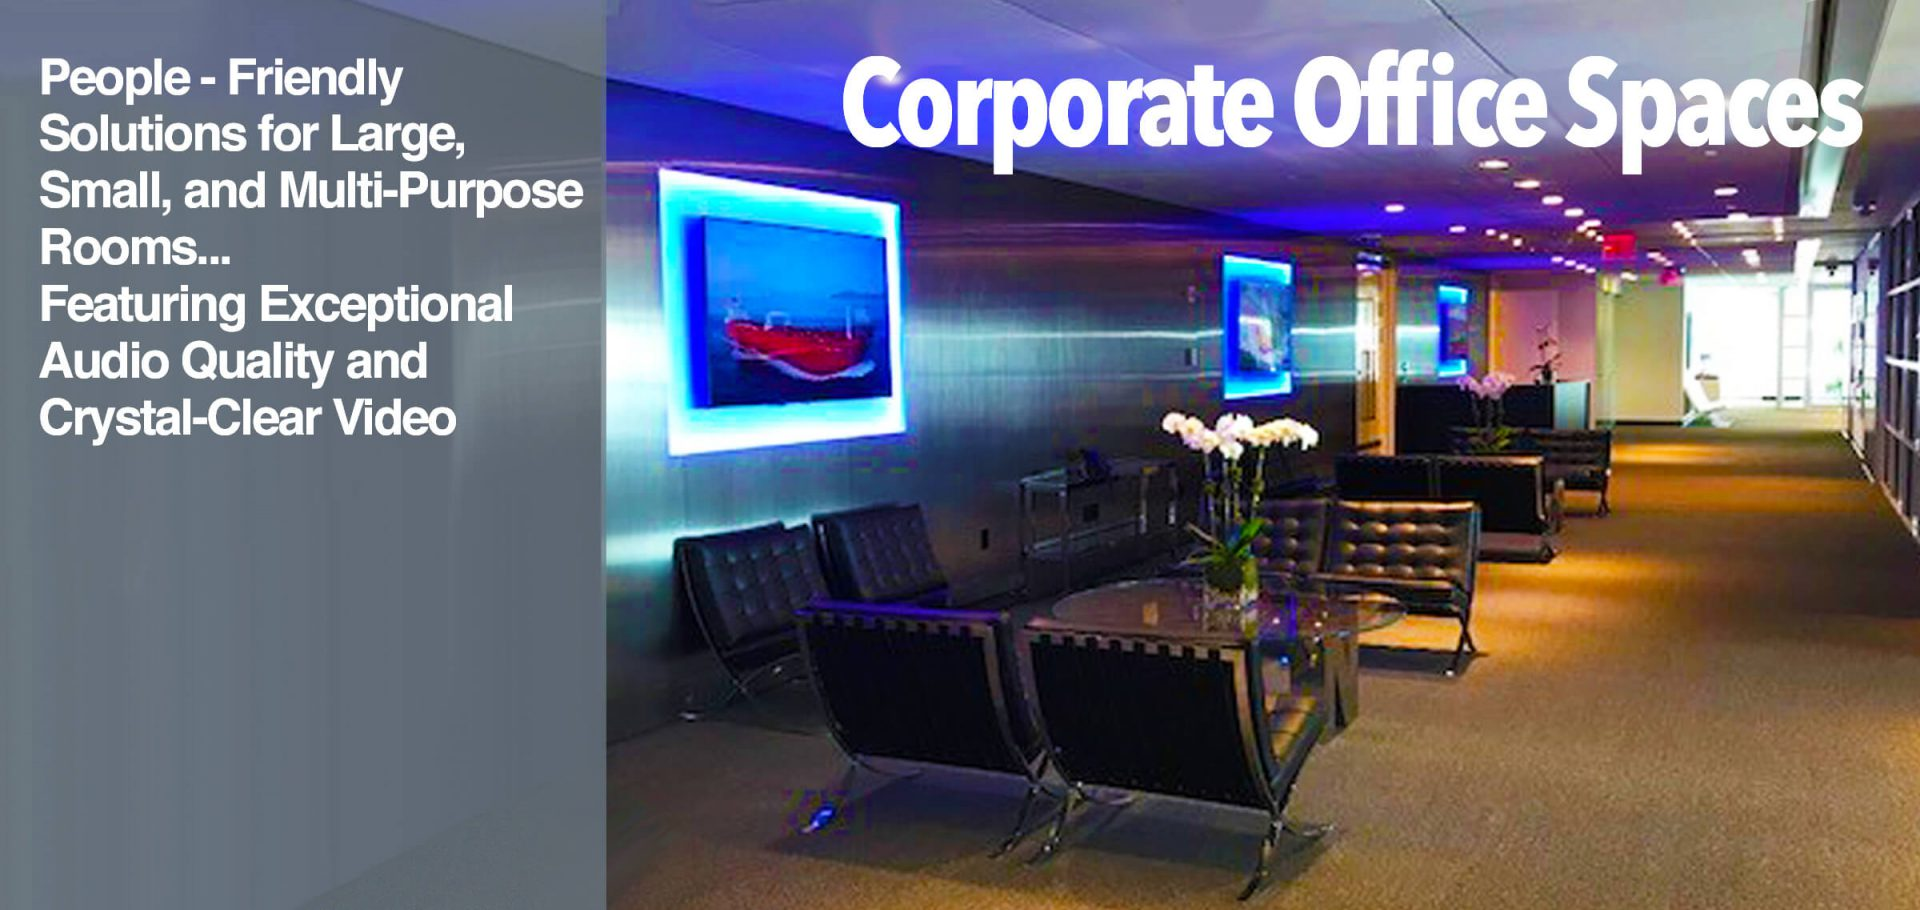 2 -Corp Office Spaces